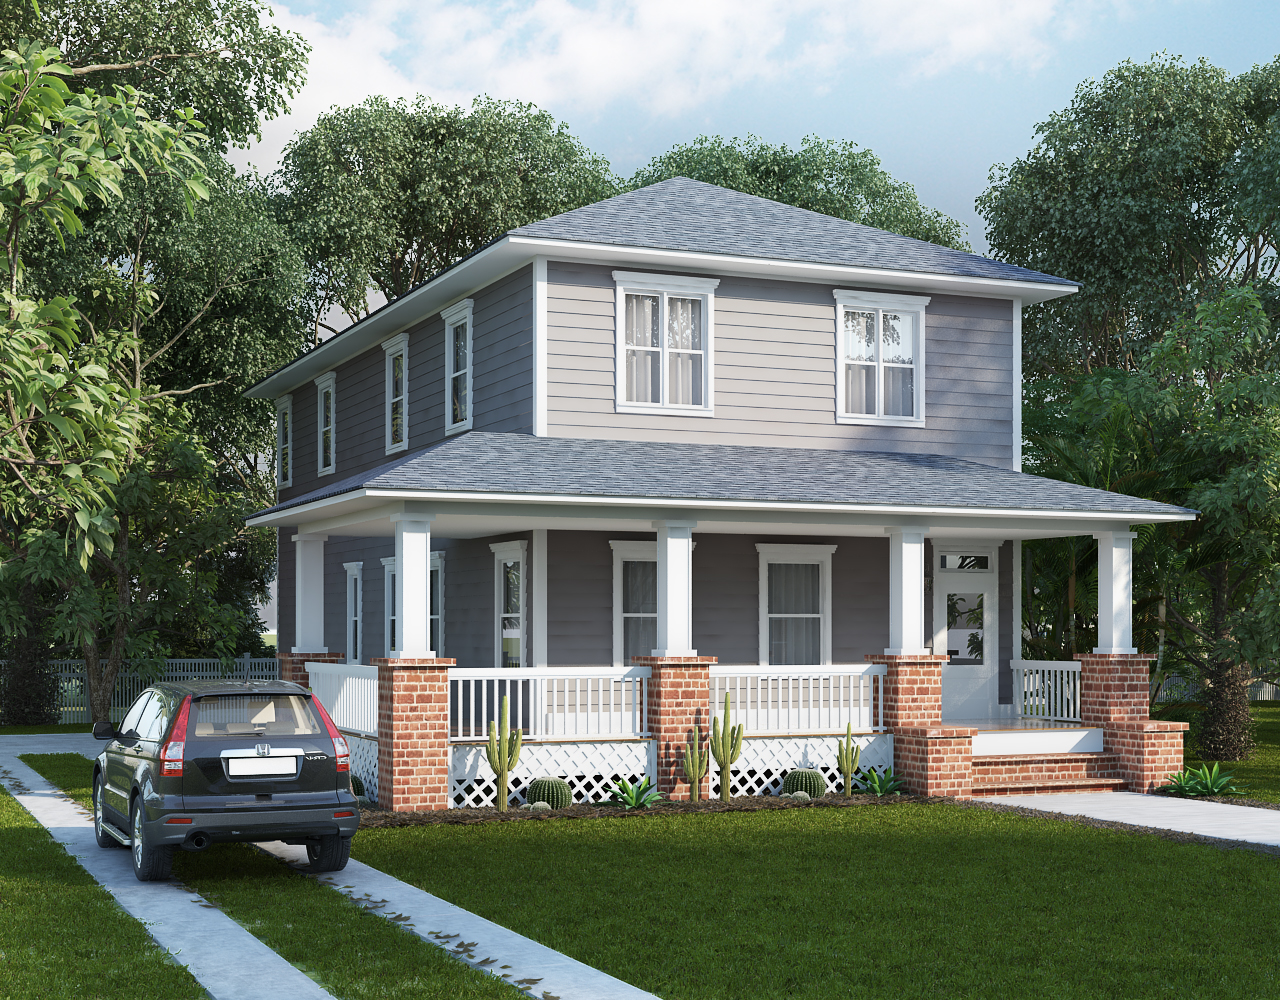 2055 Forbes Street - New Construction In Riverside